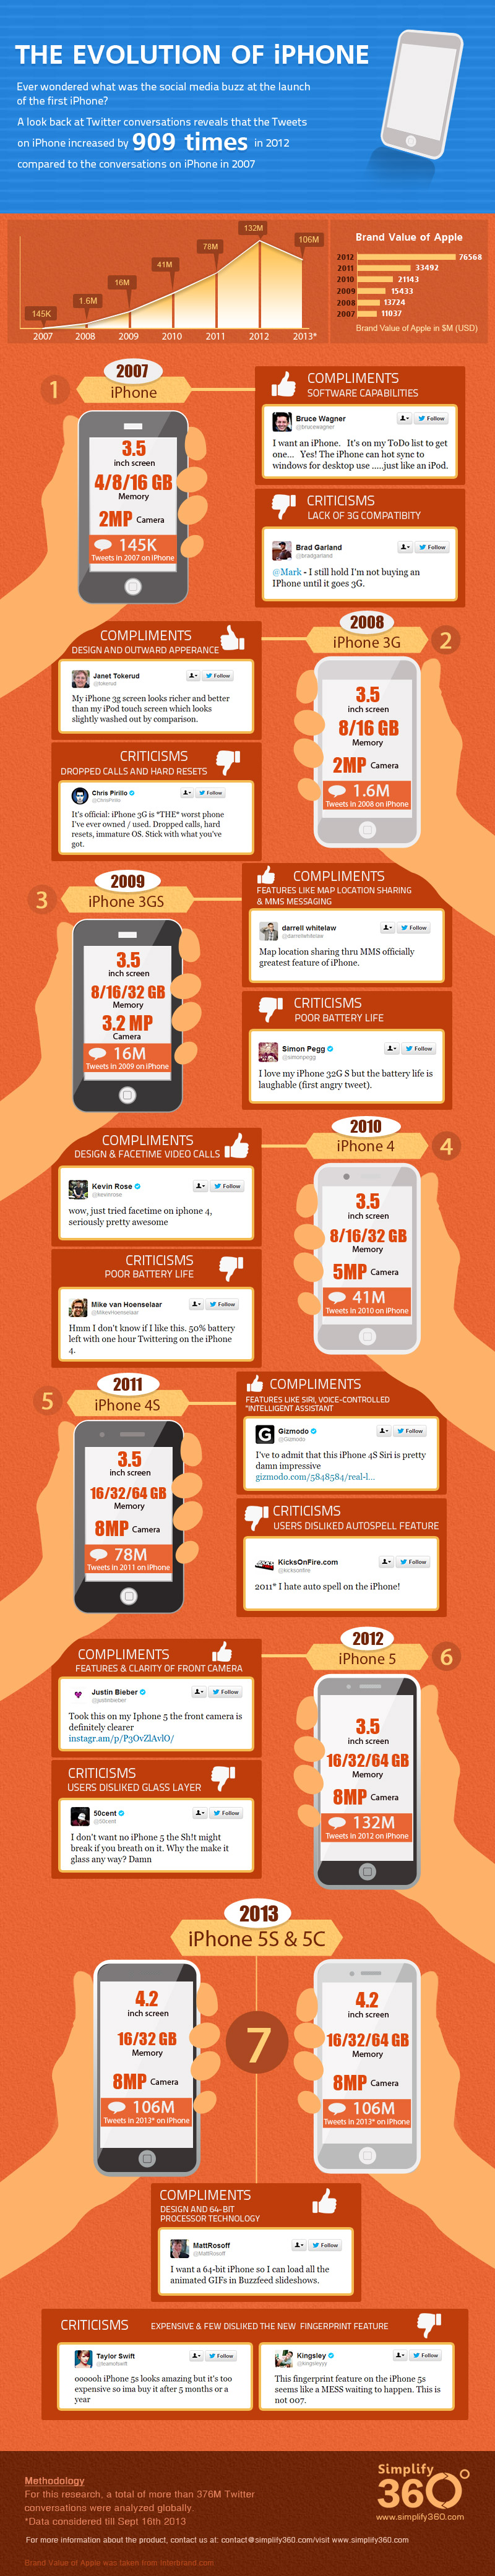 how-the-social-chatter-of-iphone-launch-has-changed-over-the-years_525e2643631ad